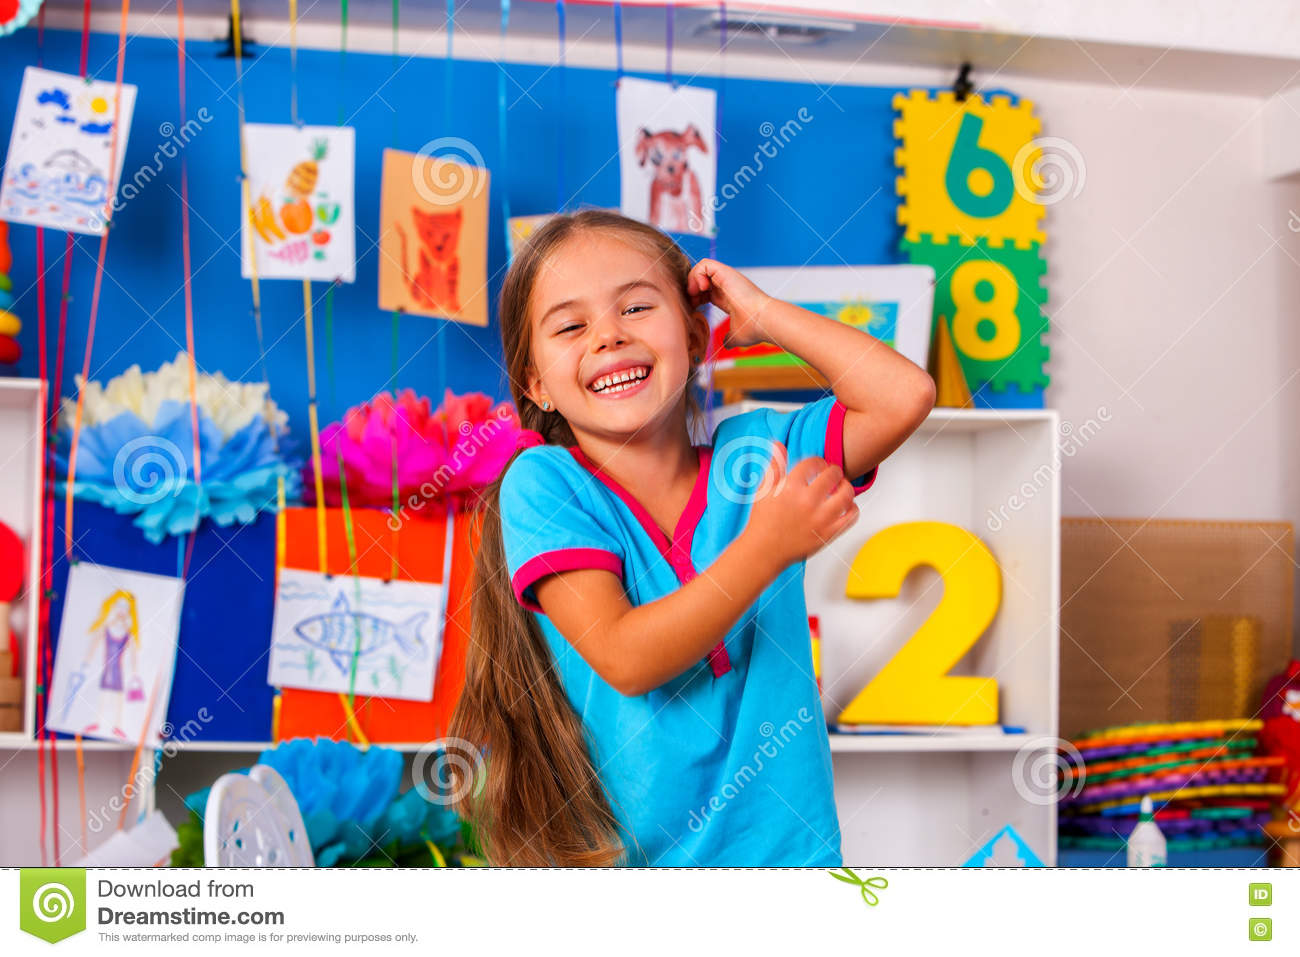 Happy laughing child in preschool class.